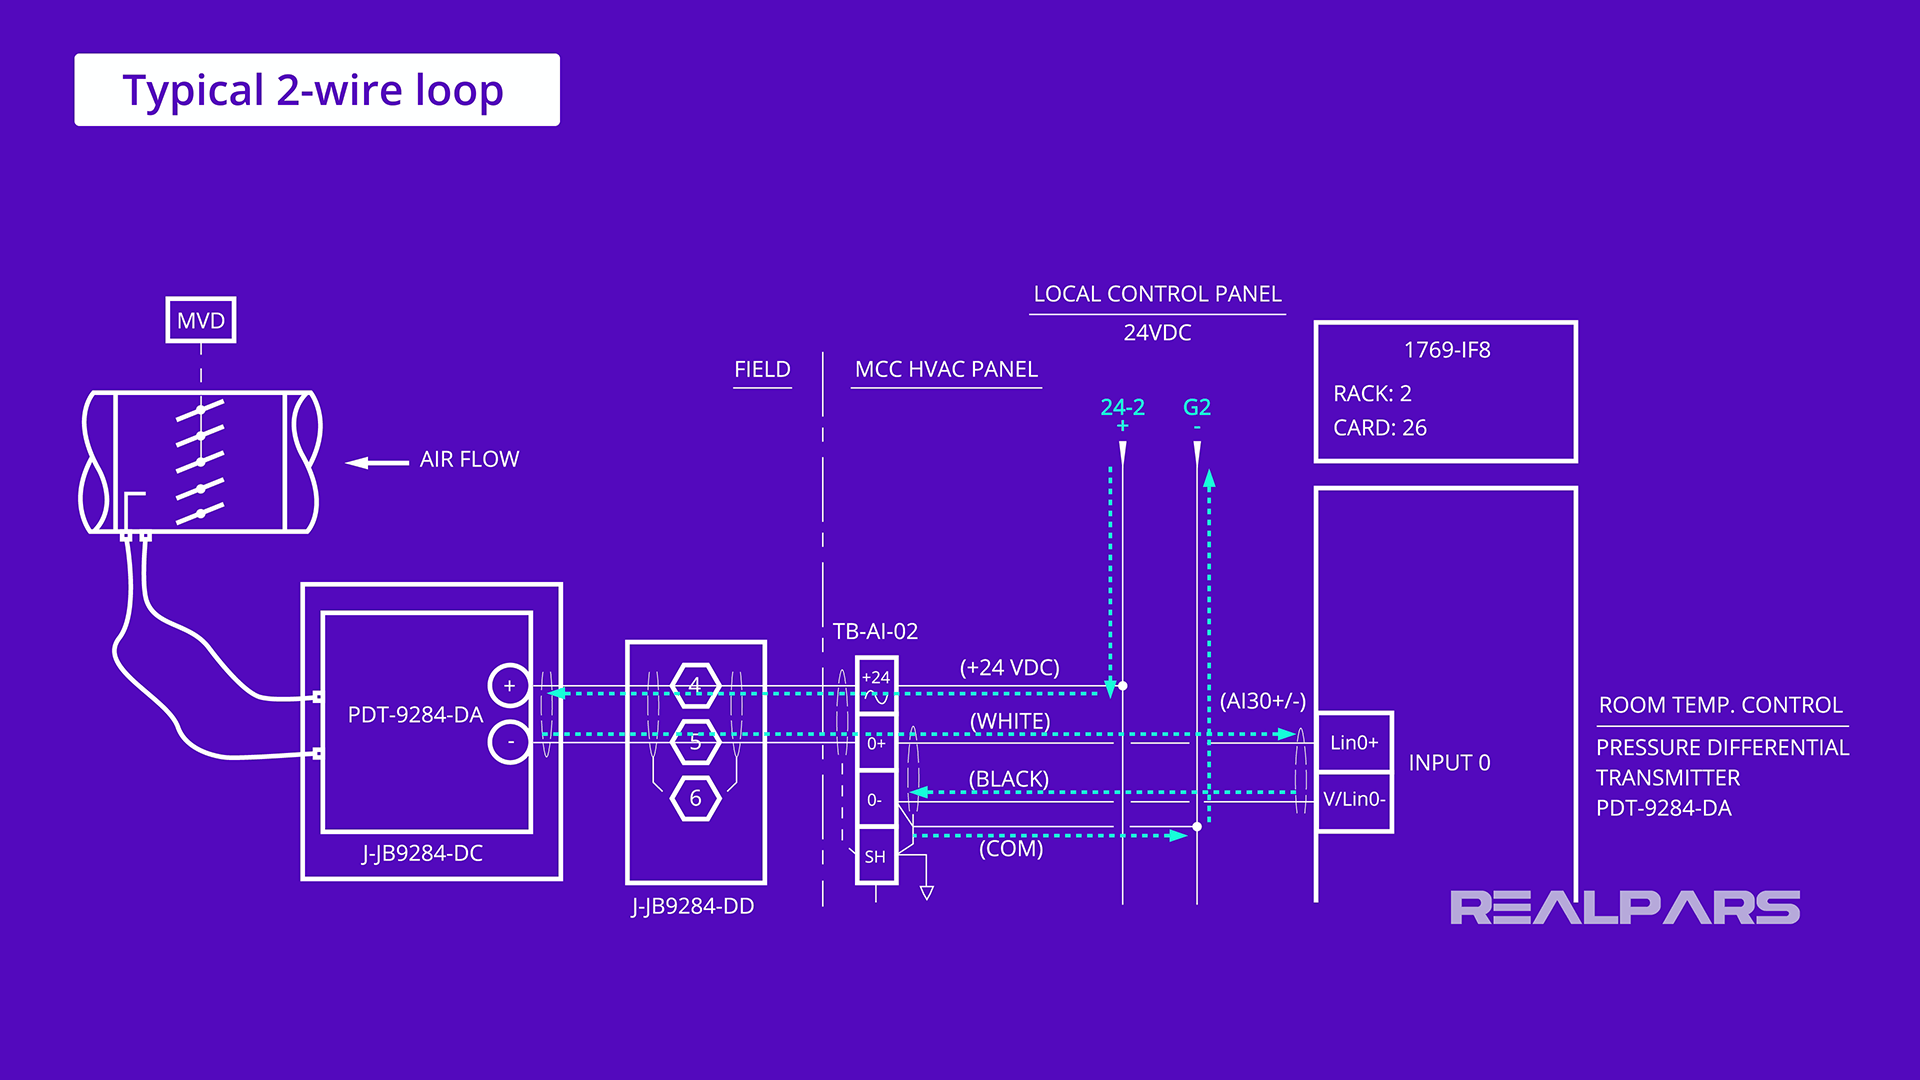 How a typical 2-wire current loop is shown on a loop diagram